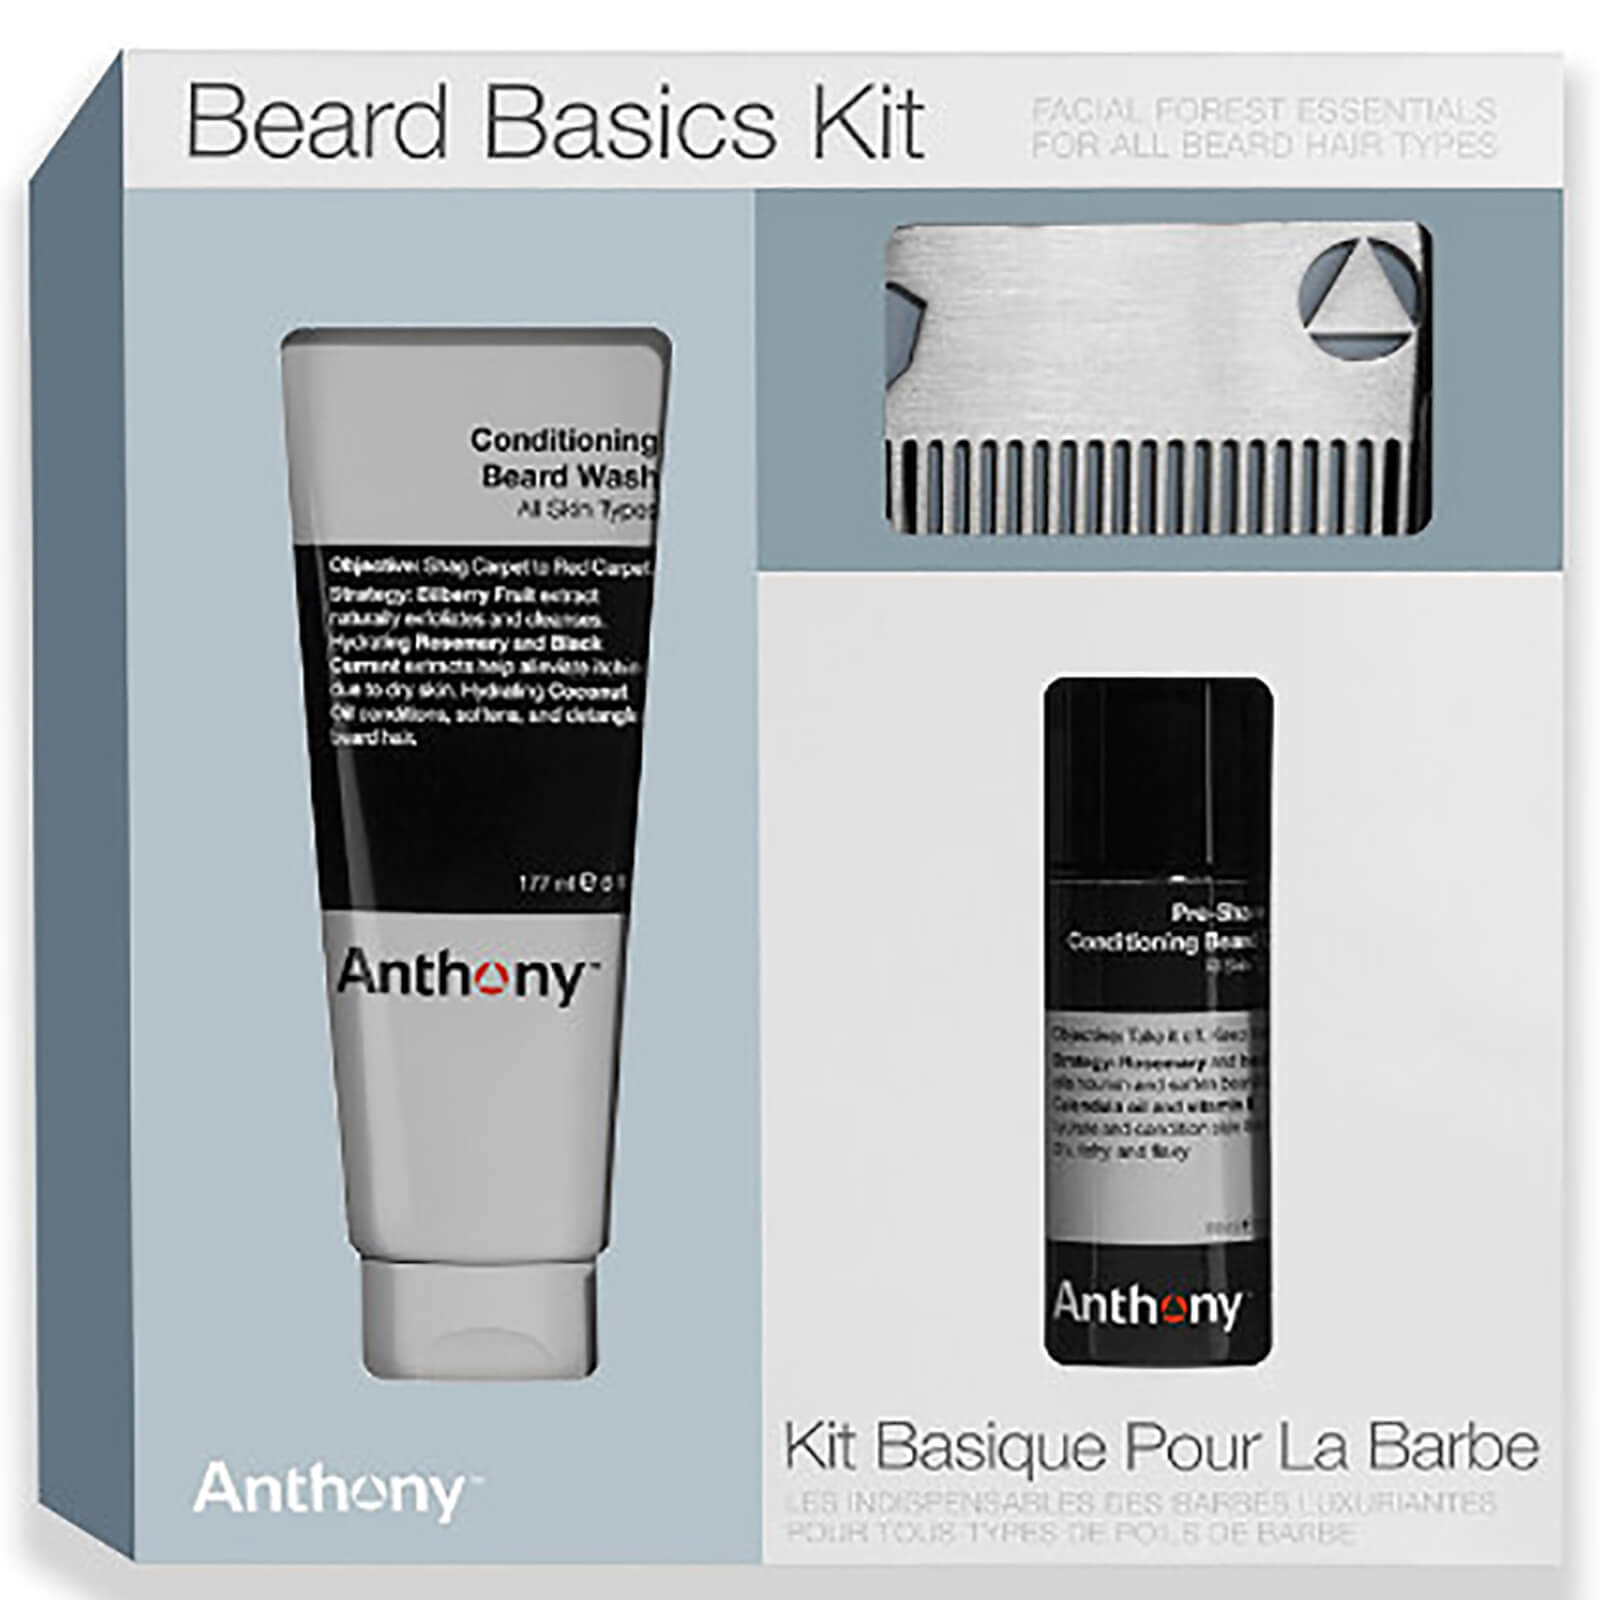 Anthony Beard Basics Kit